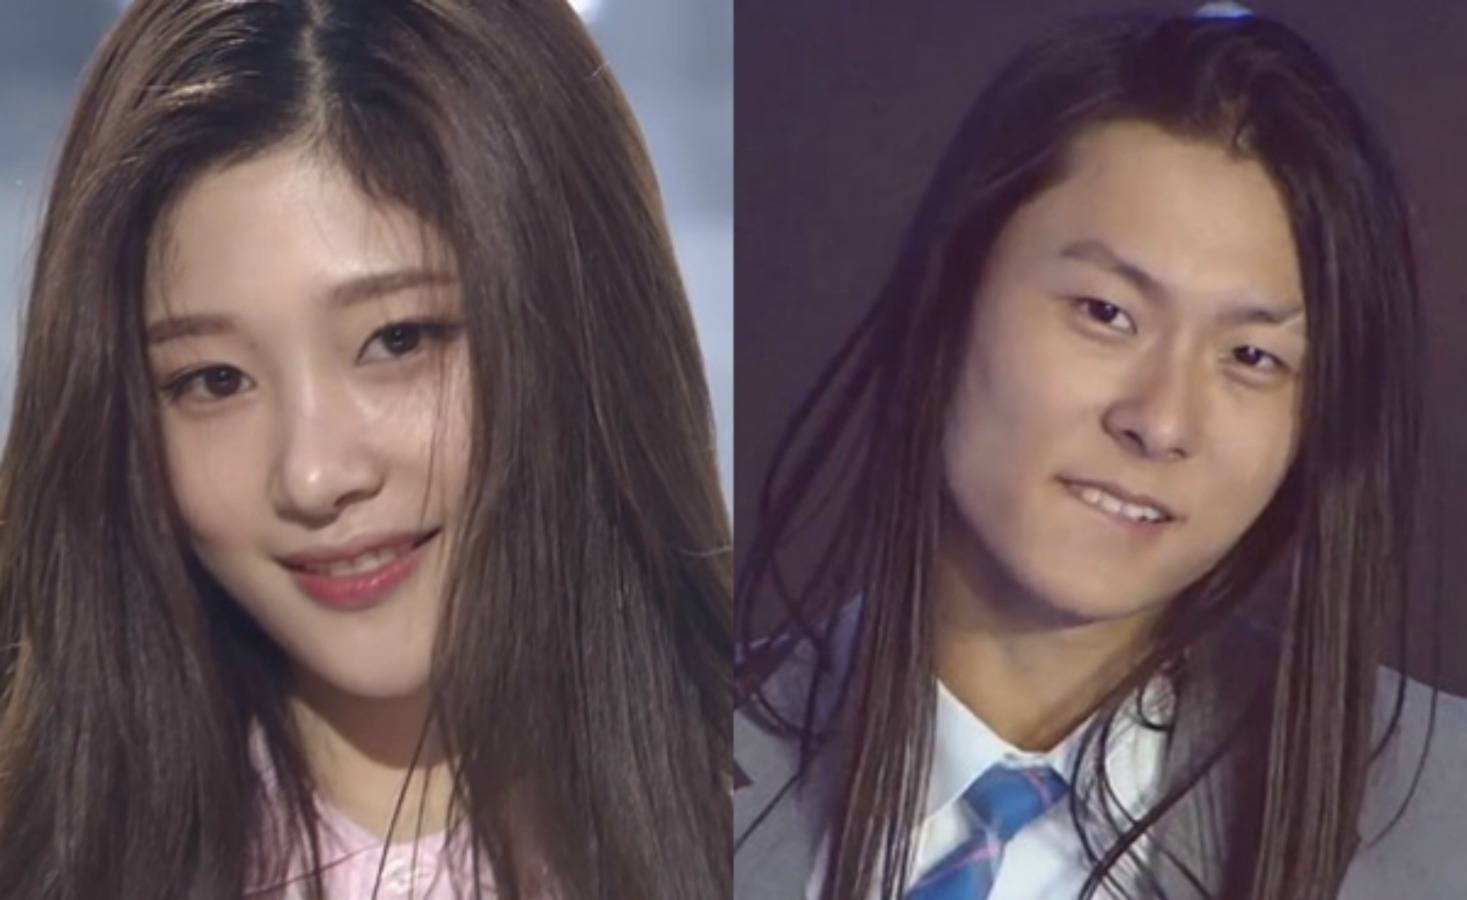 Heres how Chaeyeon reacted after being told she looks like Jang Moon Bok